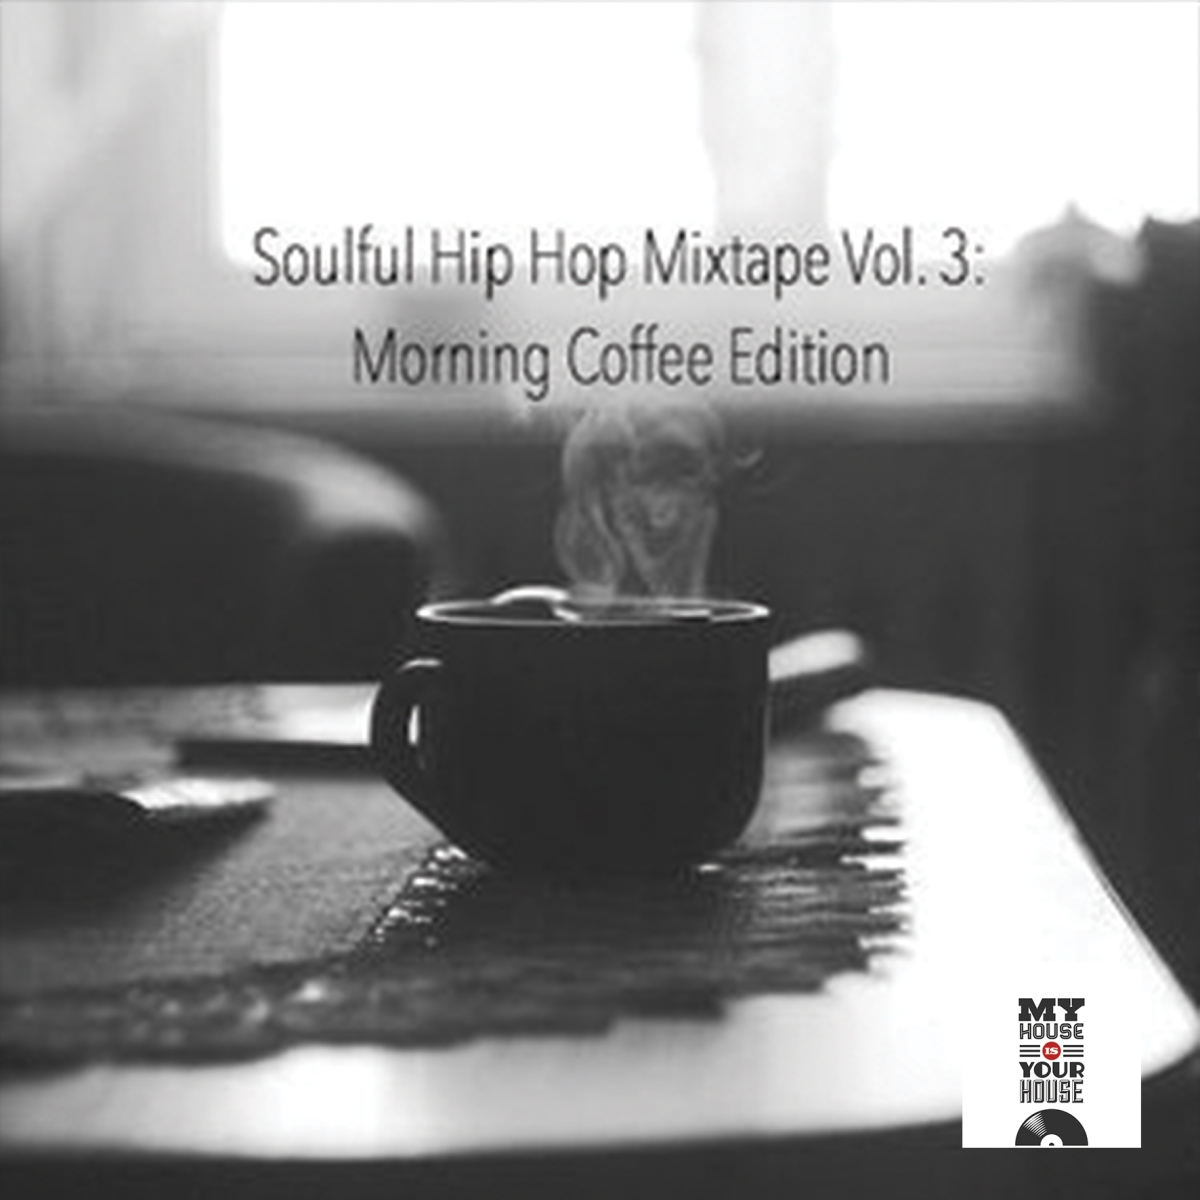 House Nation Thailand Mix 008 by DJ Sakro [The Soulful Hip Hop Mixtape Vol. 3: Morning Coffee Edition]